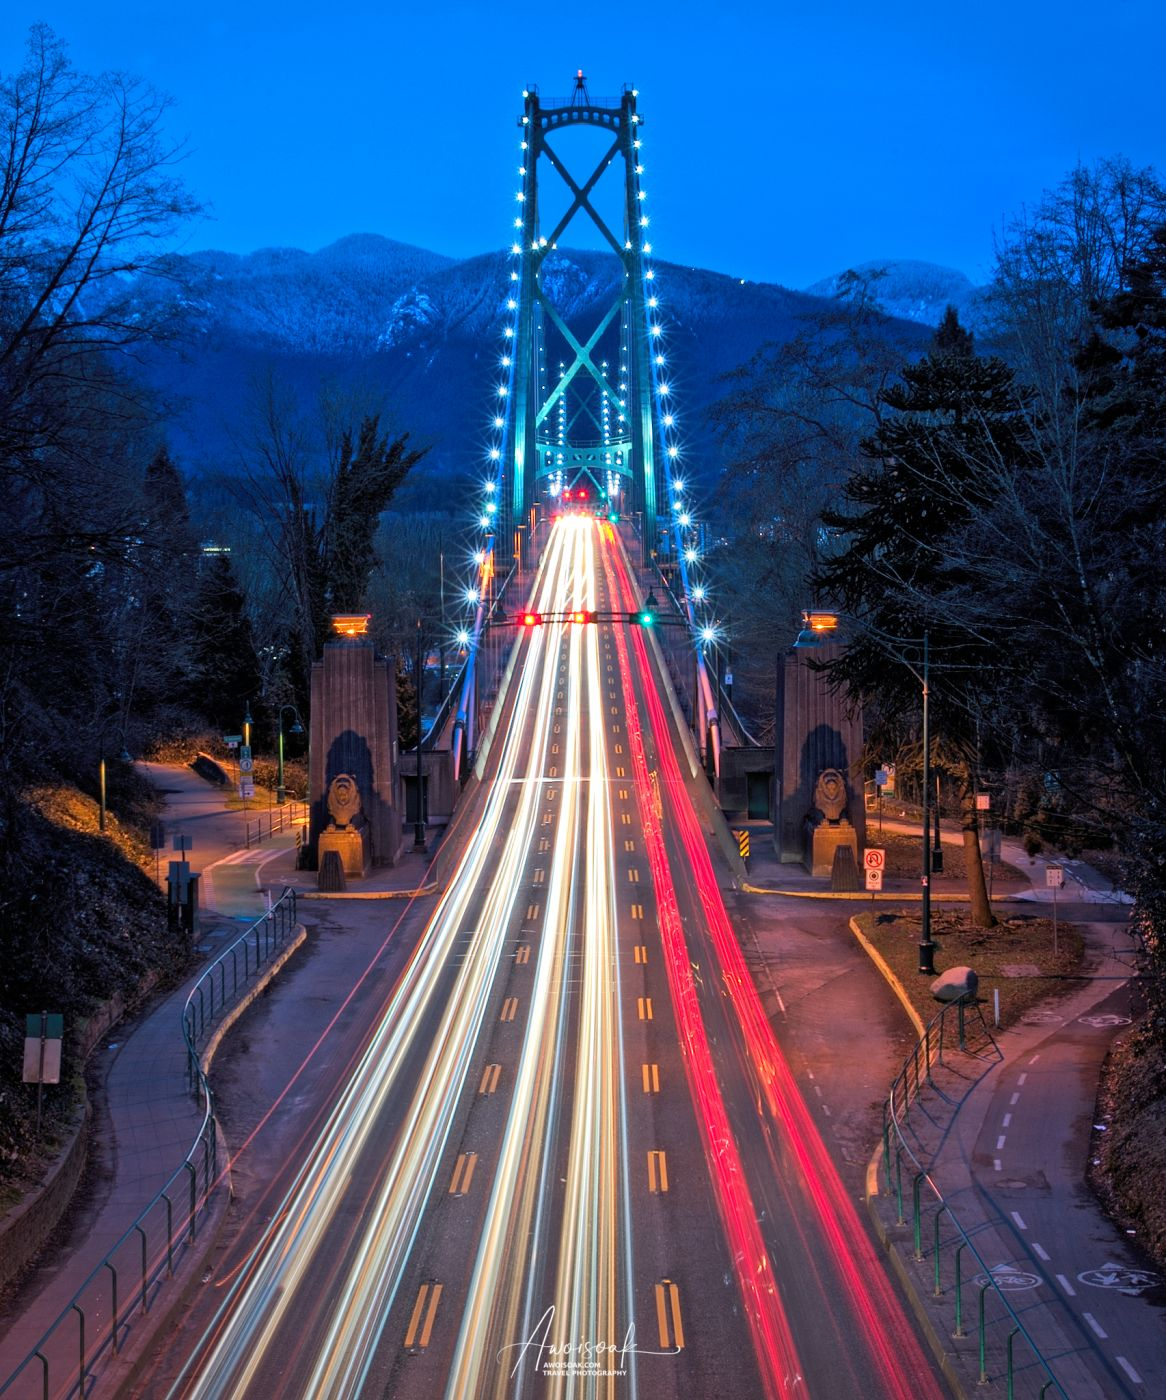 Lions Gate Bridge, Canada